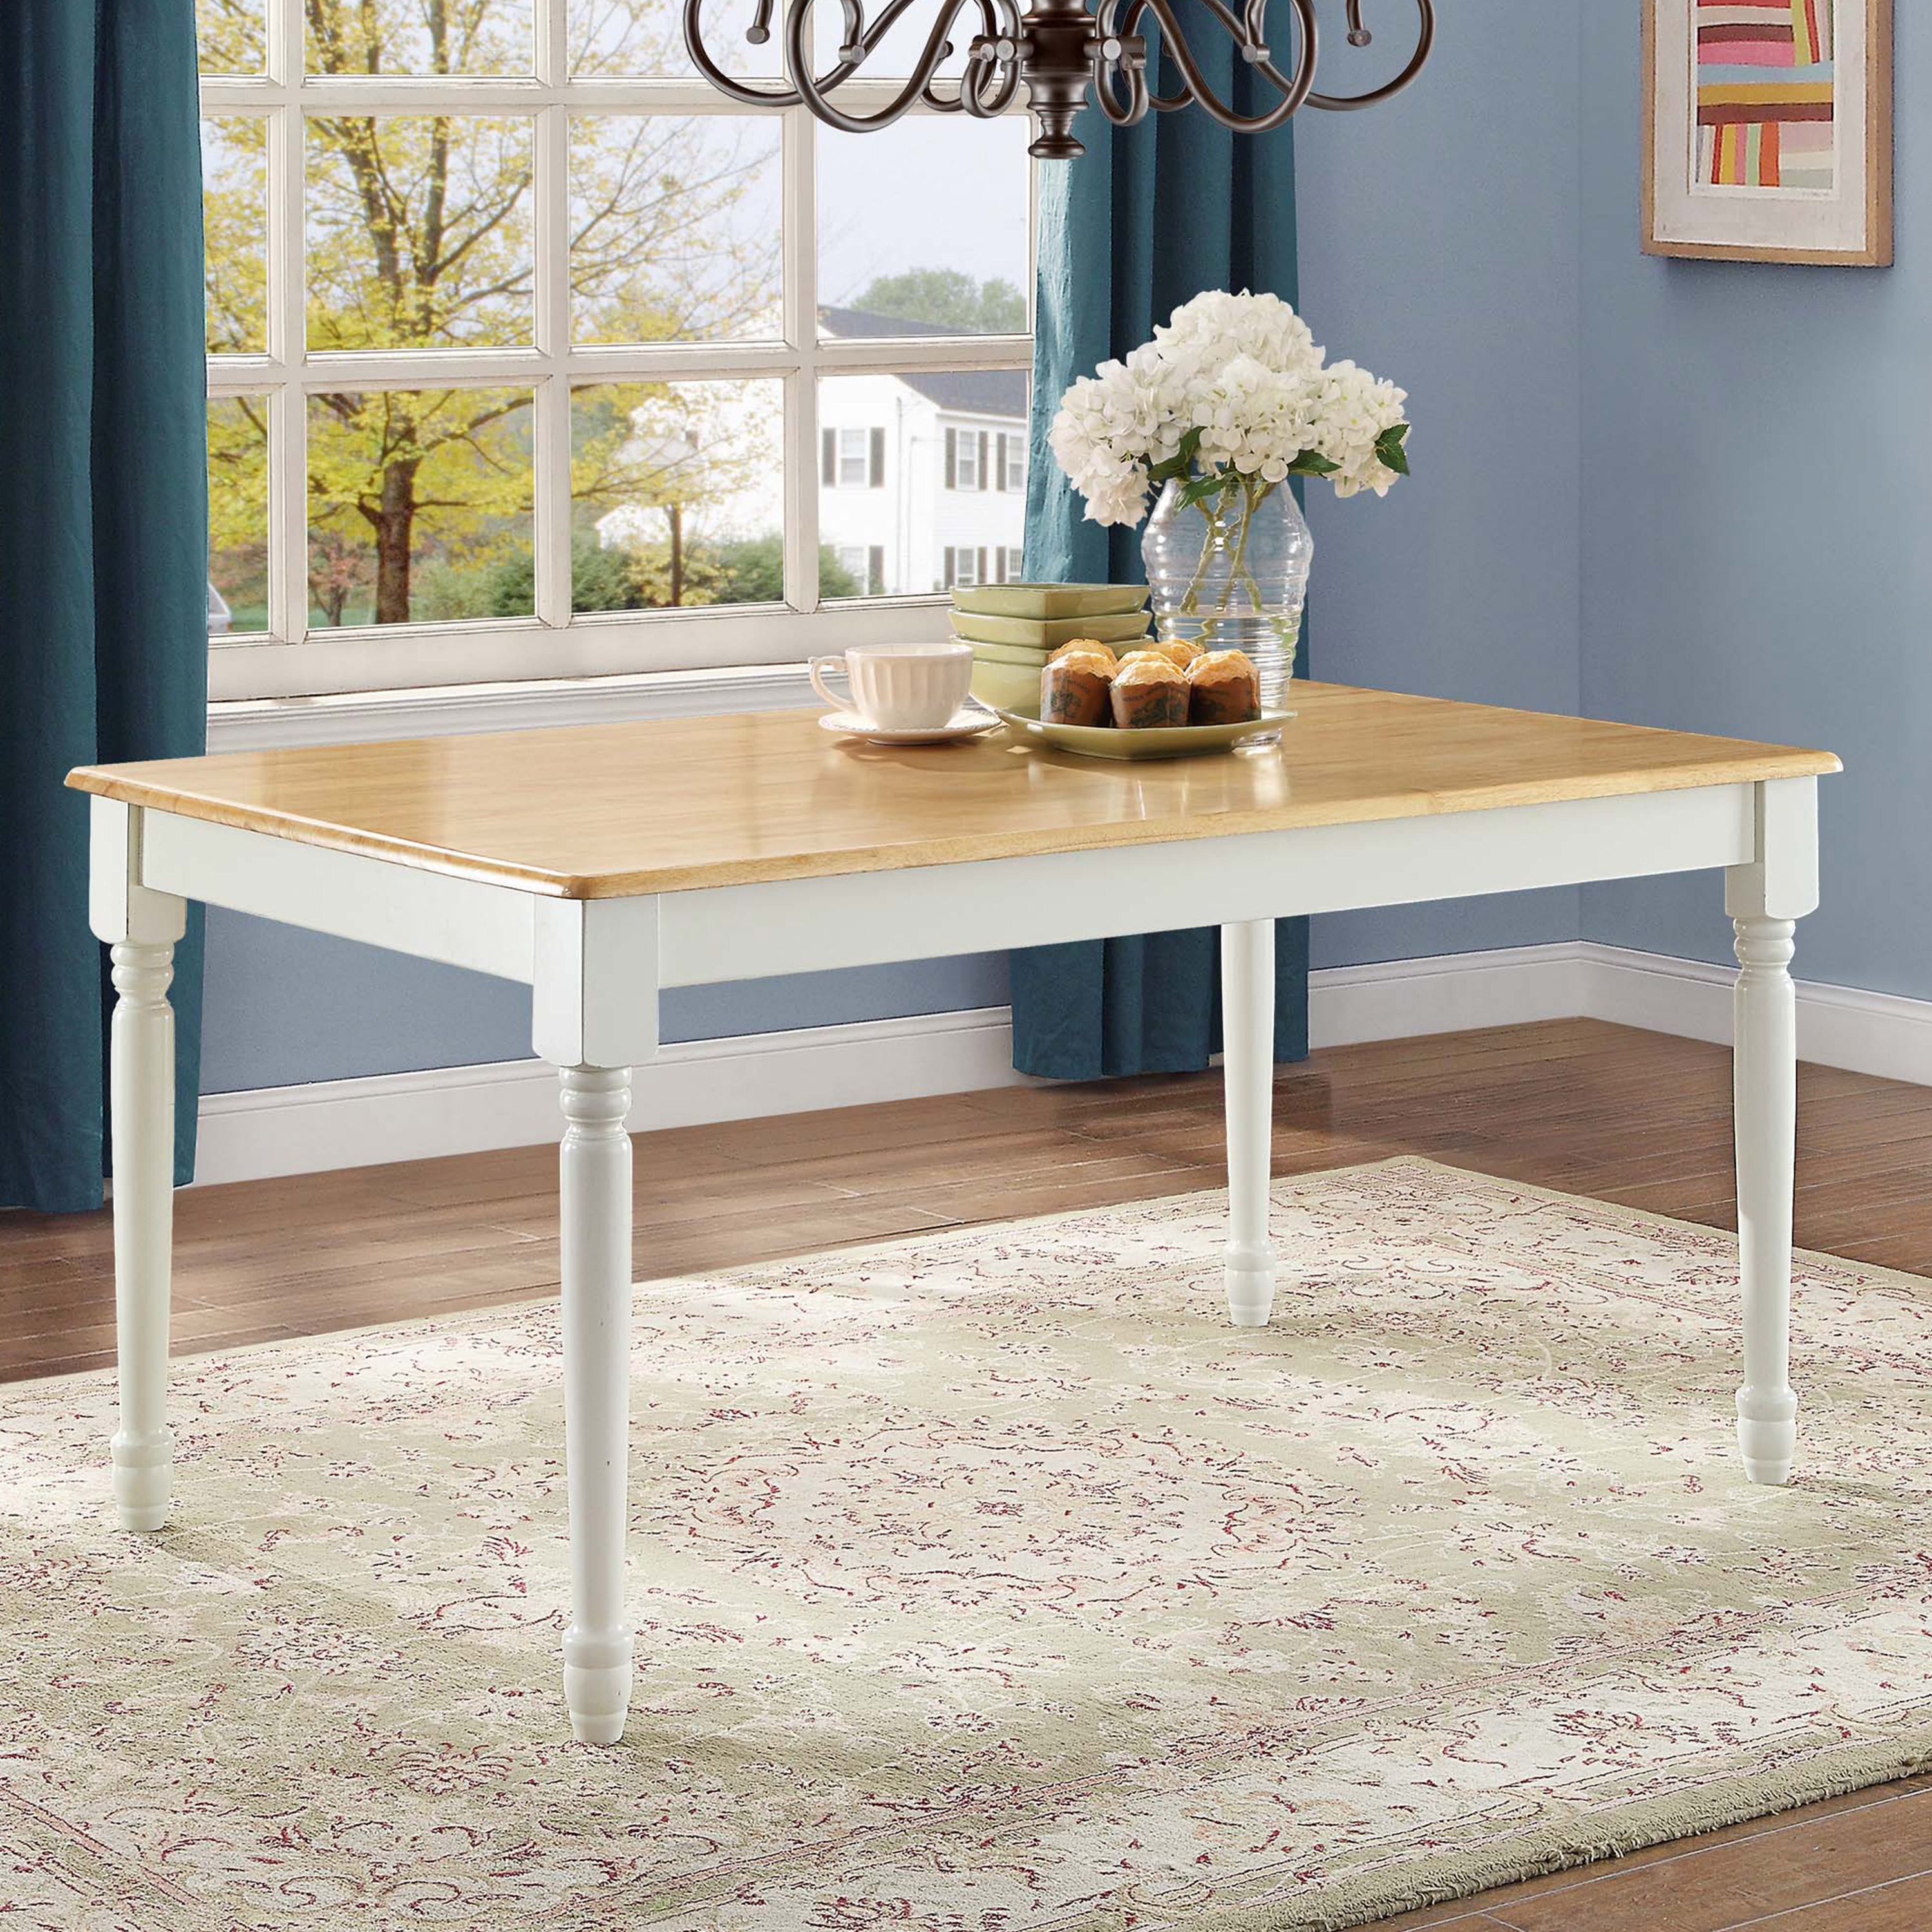 Moorehead 3 Piece Counter Height Dining Sets Within Most Up To Date Kitchen & Dining Furniture – Walmart (View 14 of 20)